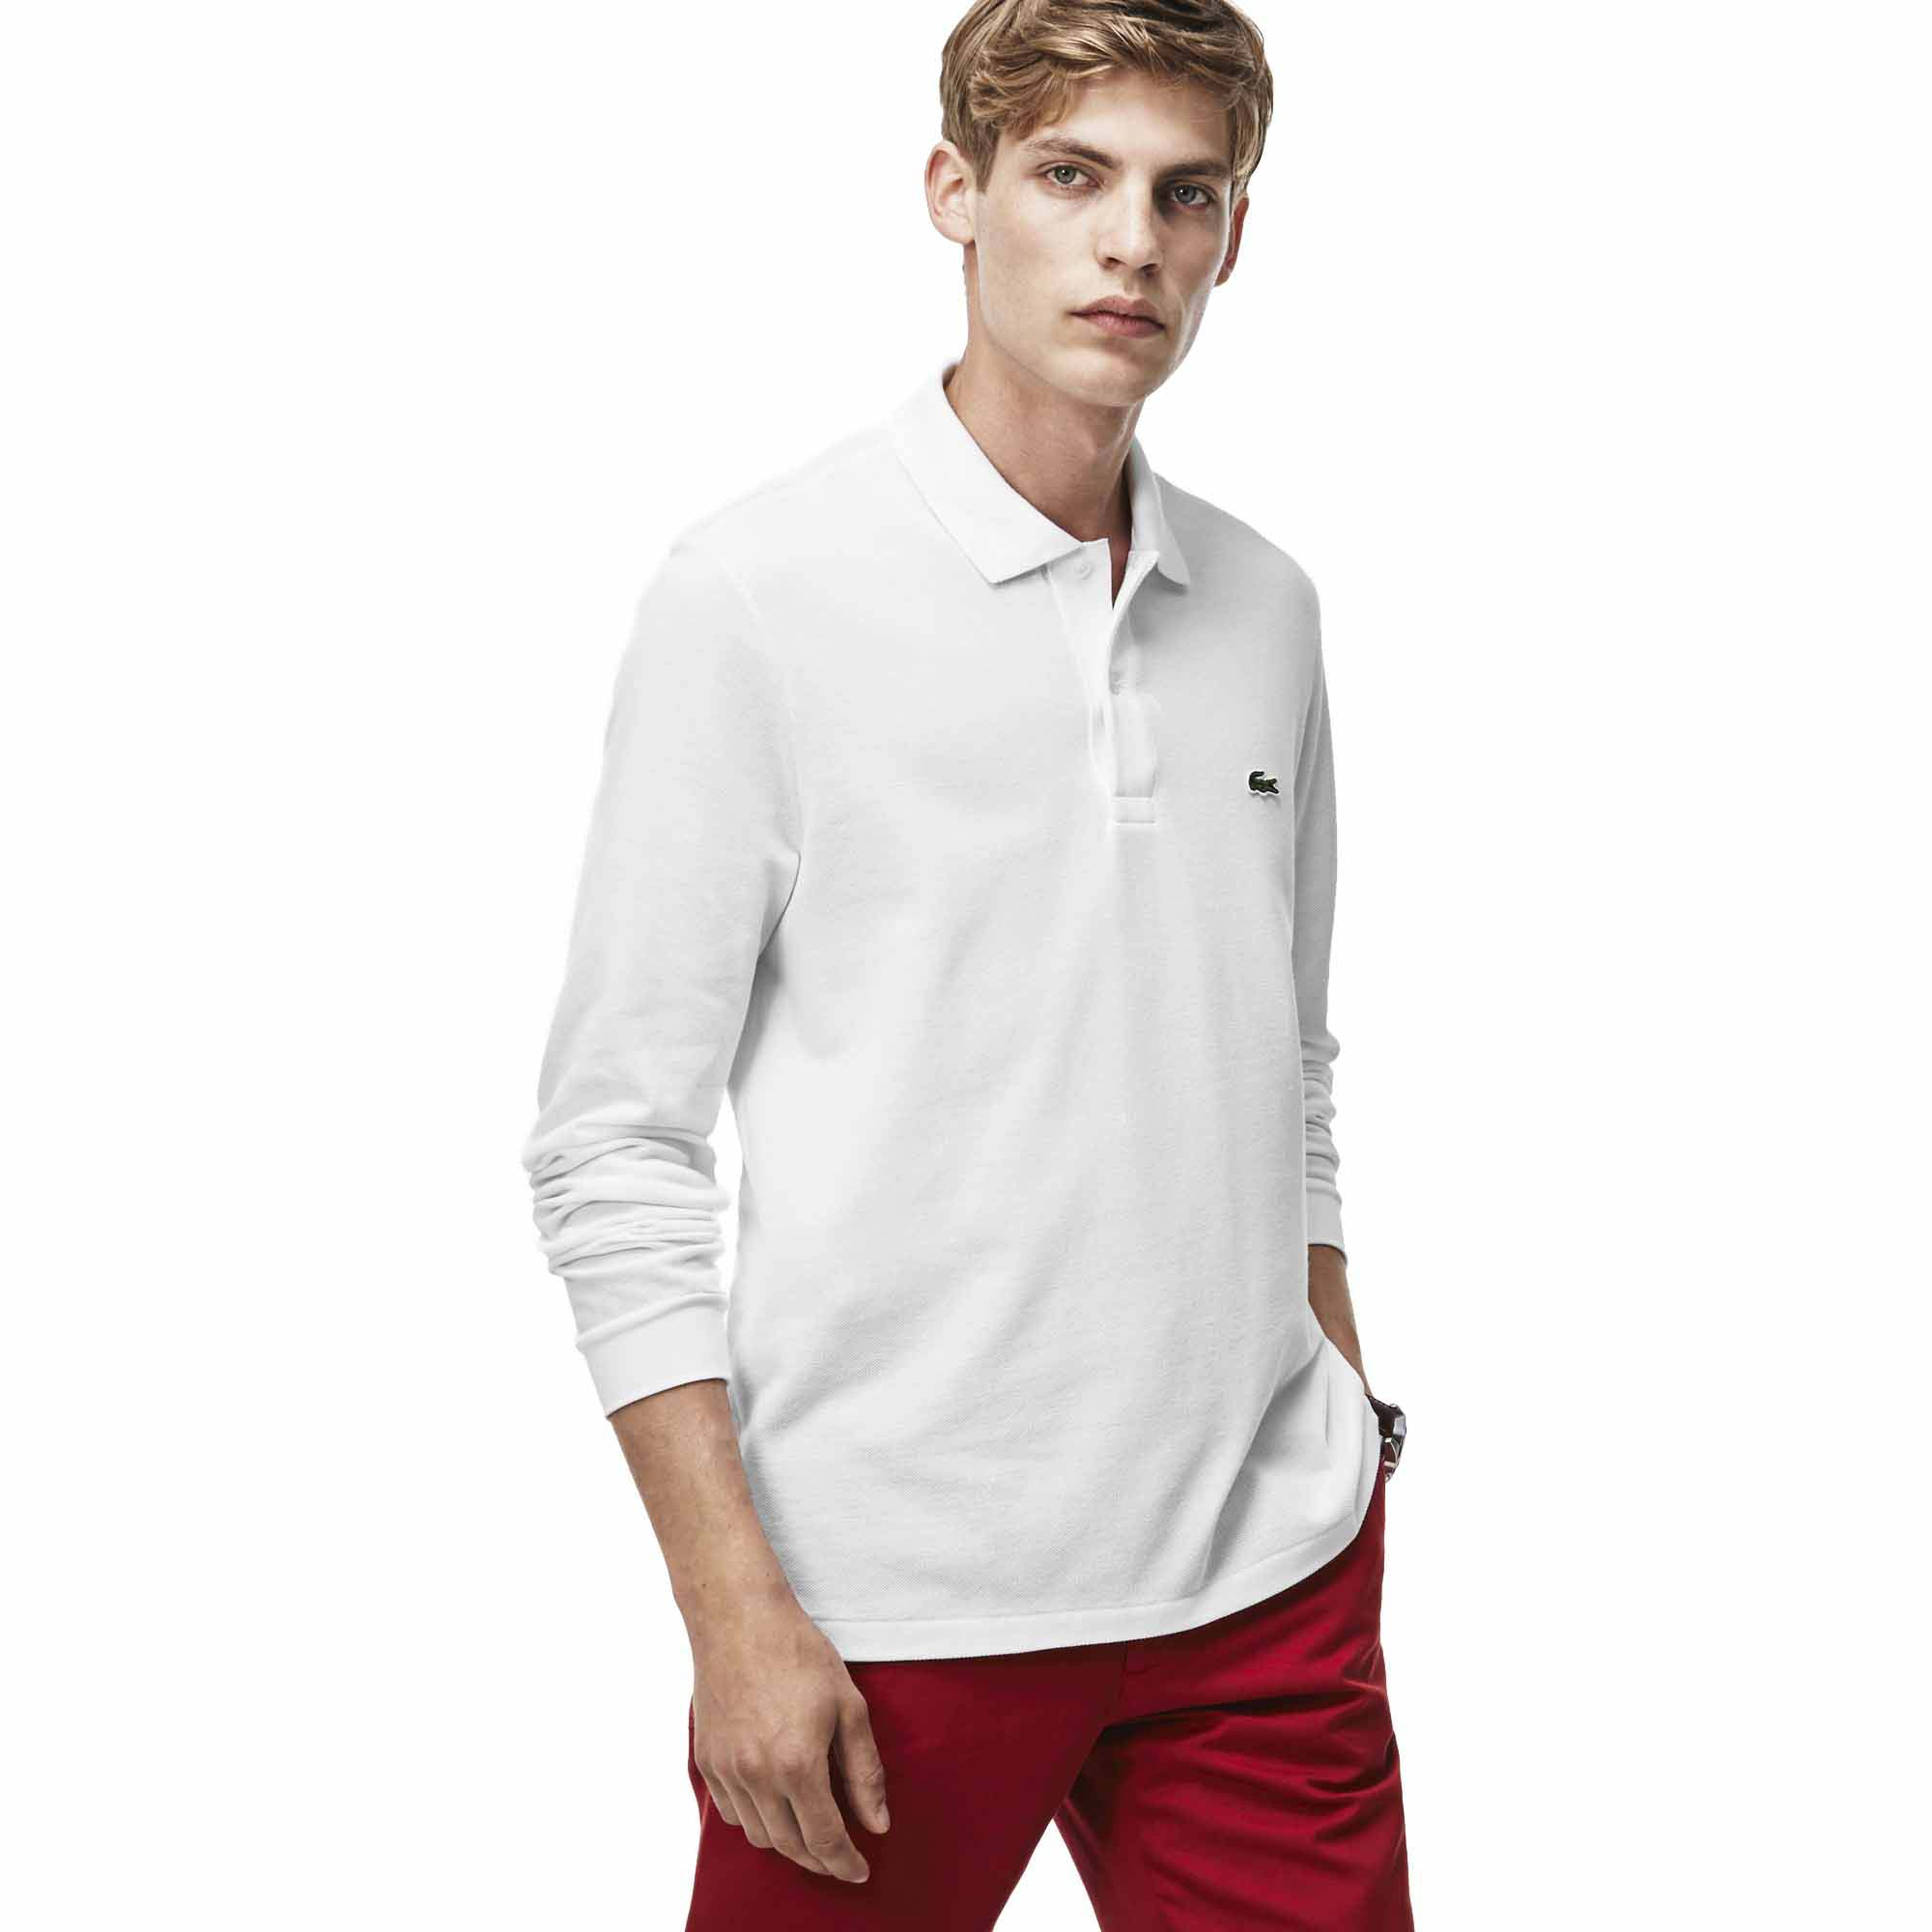 849c3a37 Lacoste L1312 Best Polo L/S White buy and offers on Dressinn